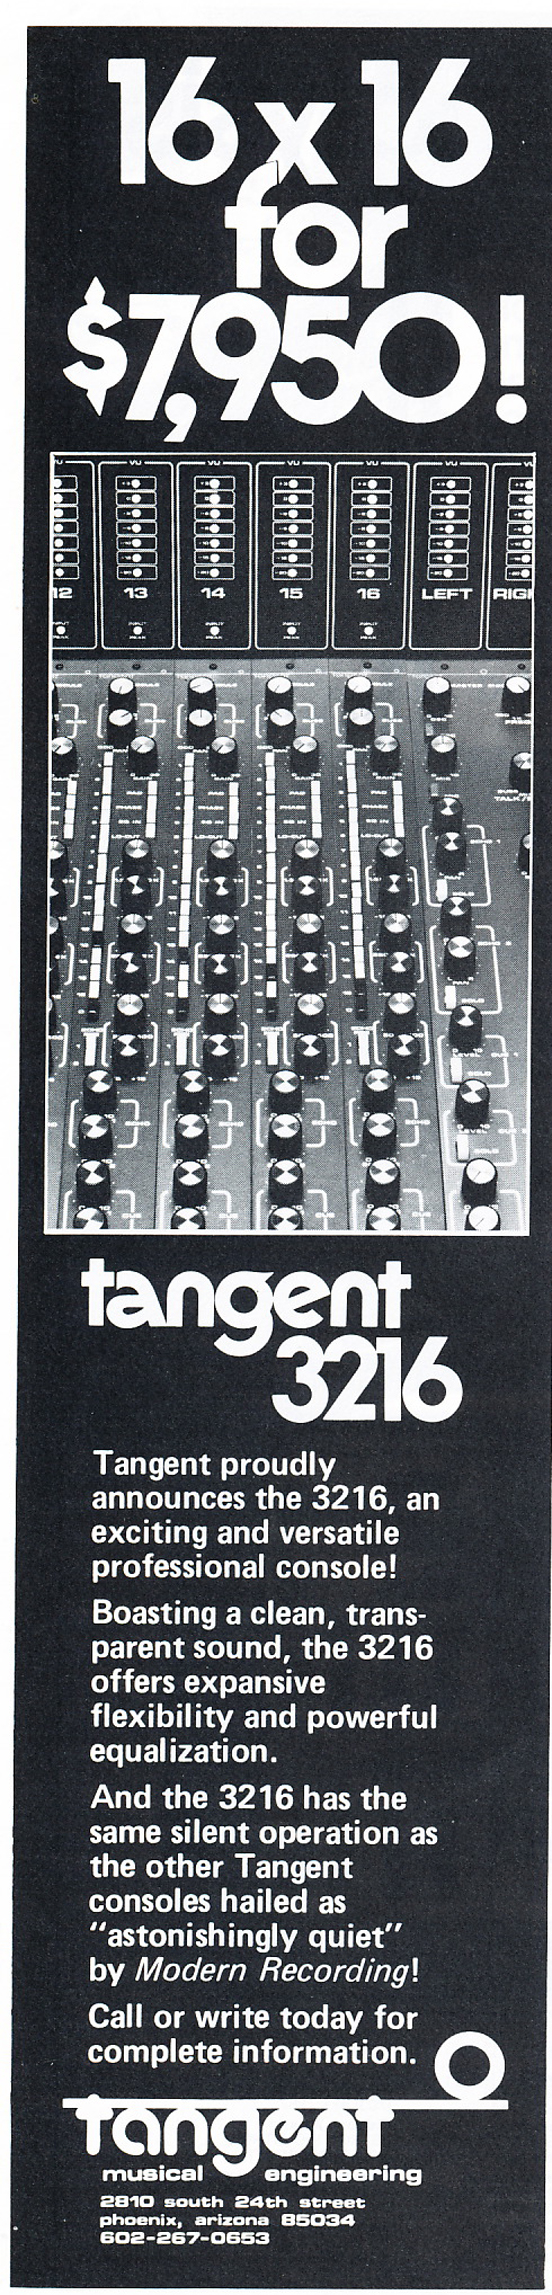 1977 ad for Tangent consoles in Reel2ReelTexas' vintage tape recorder collection